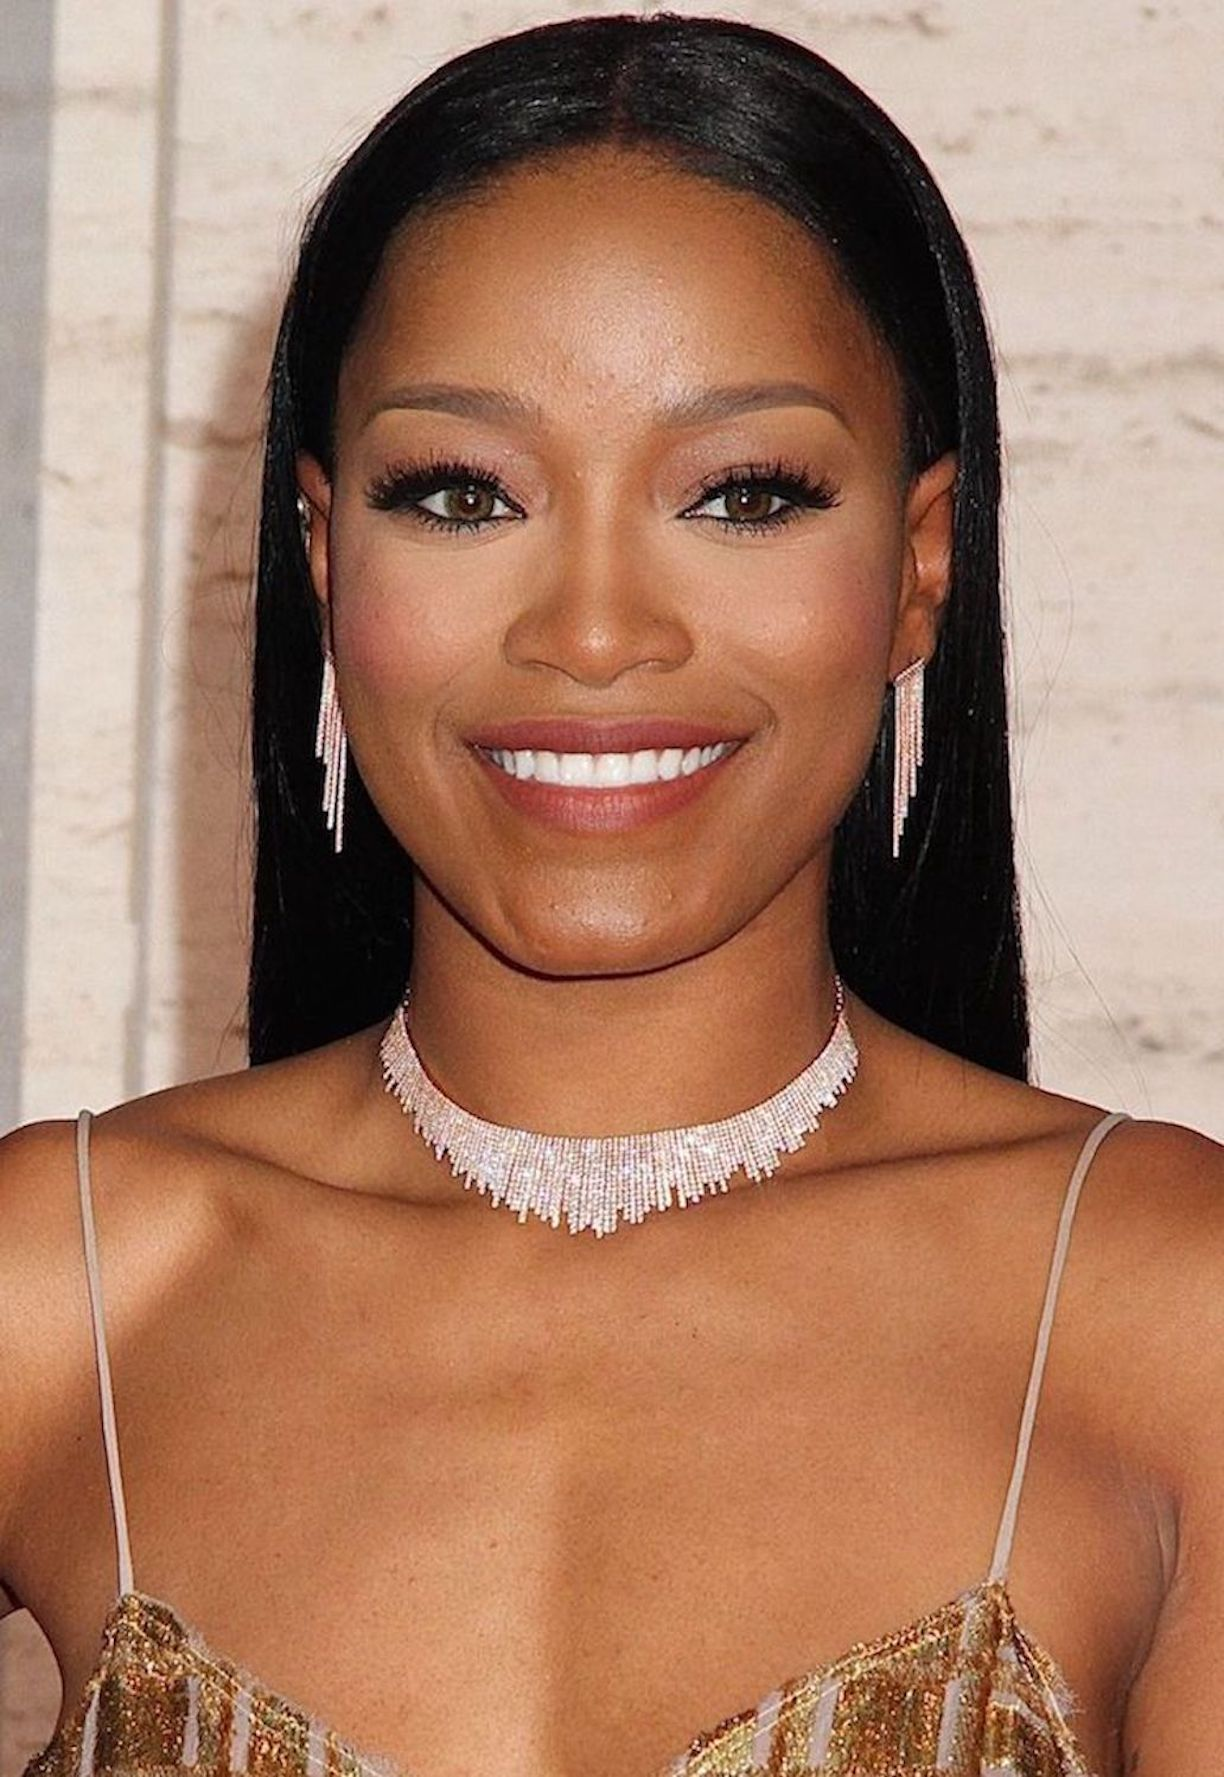 Photos Keke Palmer nudes (71 photos), Sexy, Fappening, Instagram, lingerie 2019